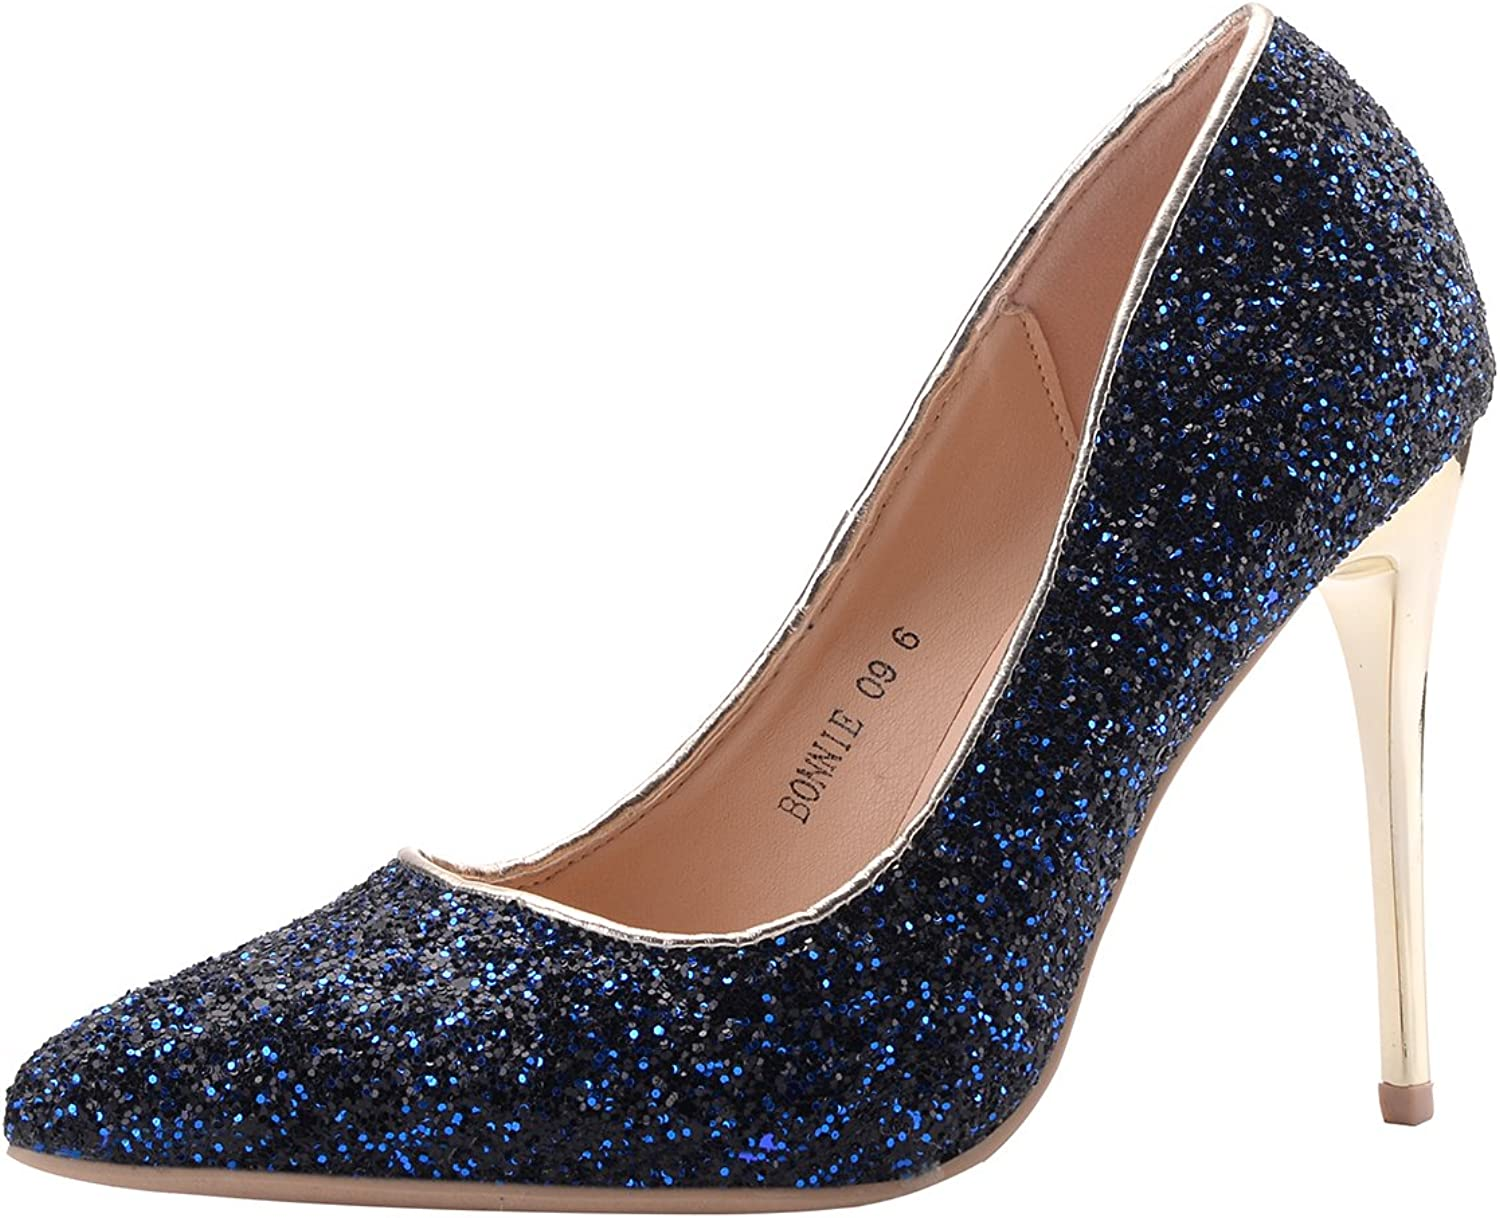 Mila Lady BONNIE09 Women Fashion Embellished Sparkles Contrast color Pointed Toe Pumps High Heel Stilettos Sexy Slip On Dress shoes